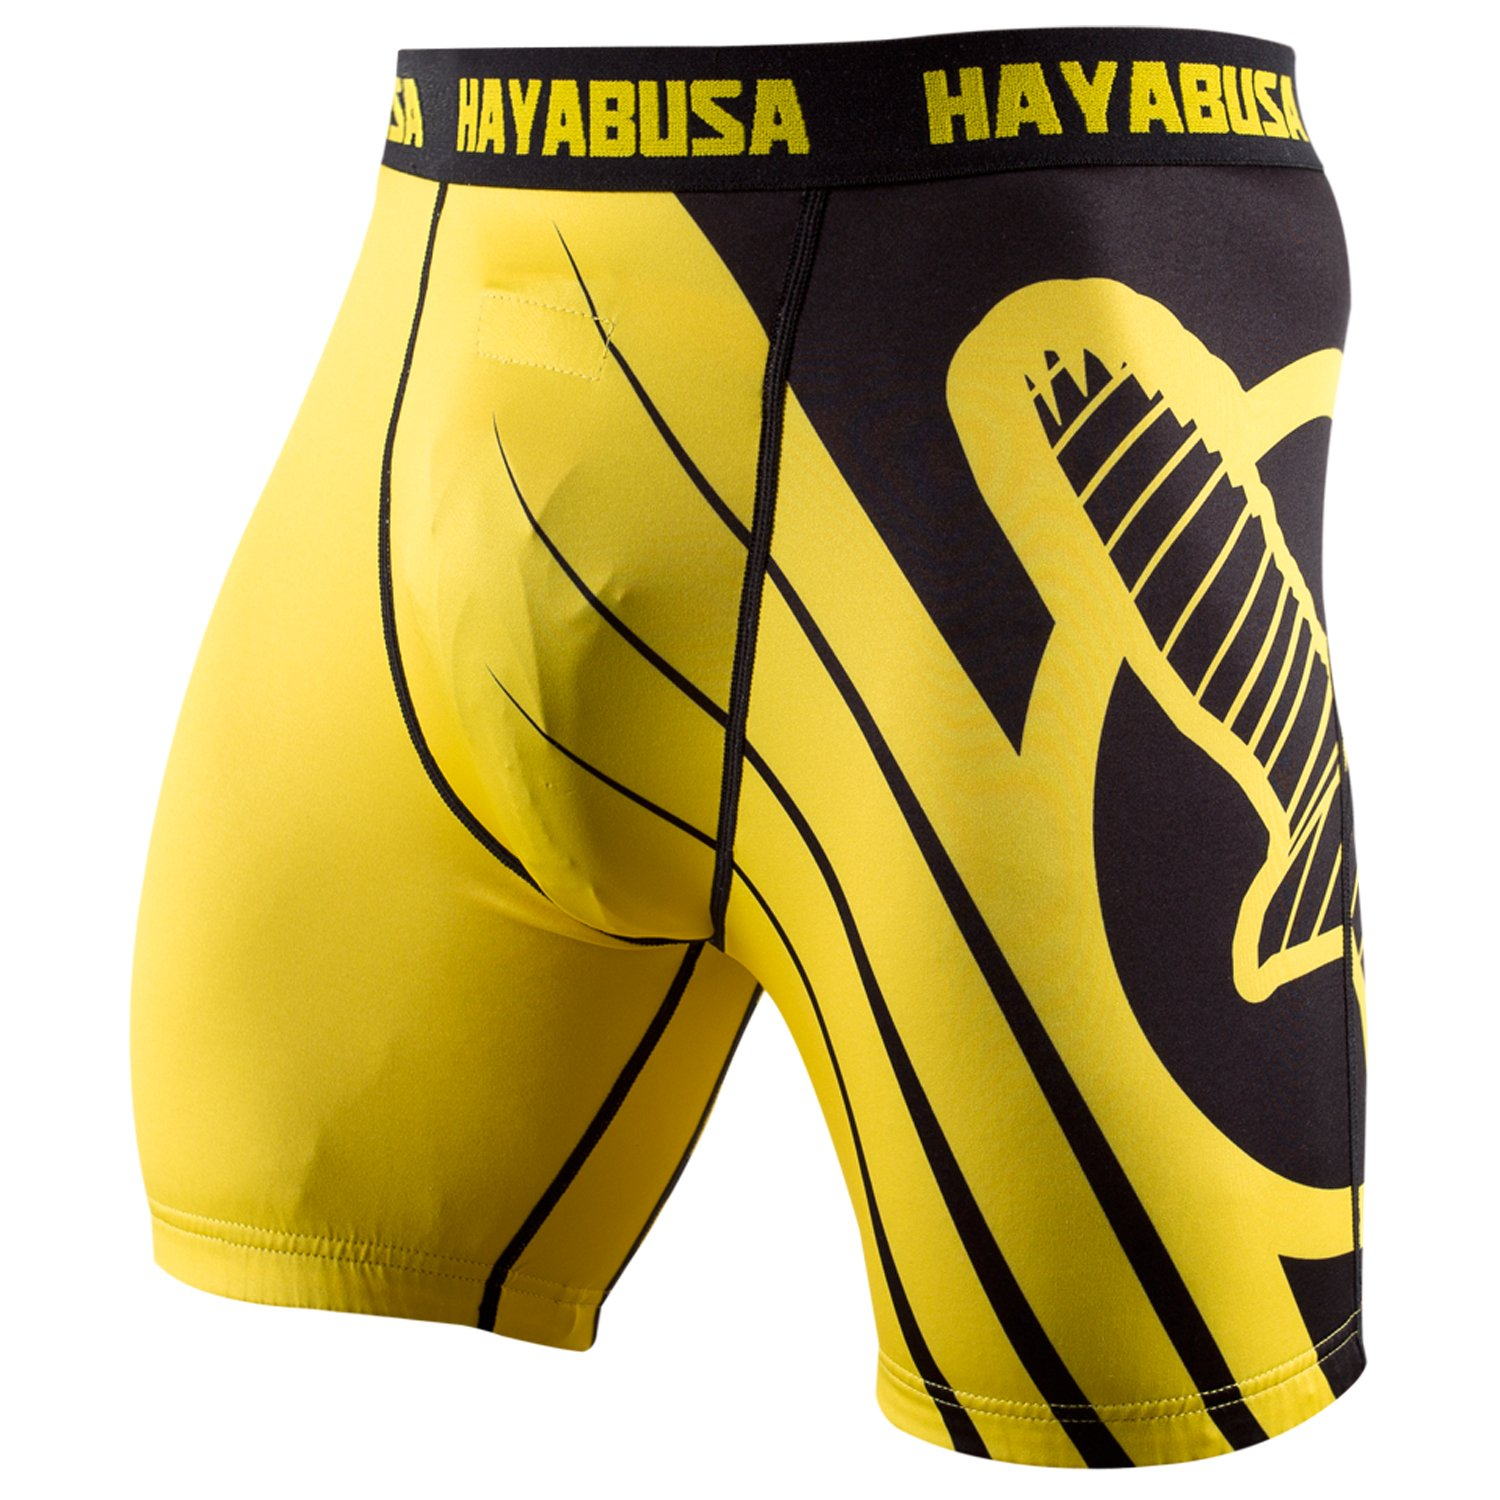 Hayabusa Men's Recast Compression Shorts HA-046